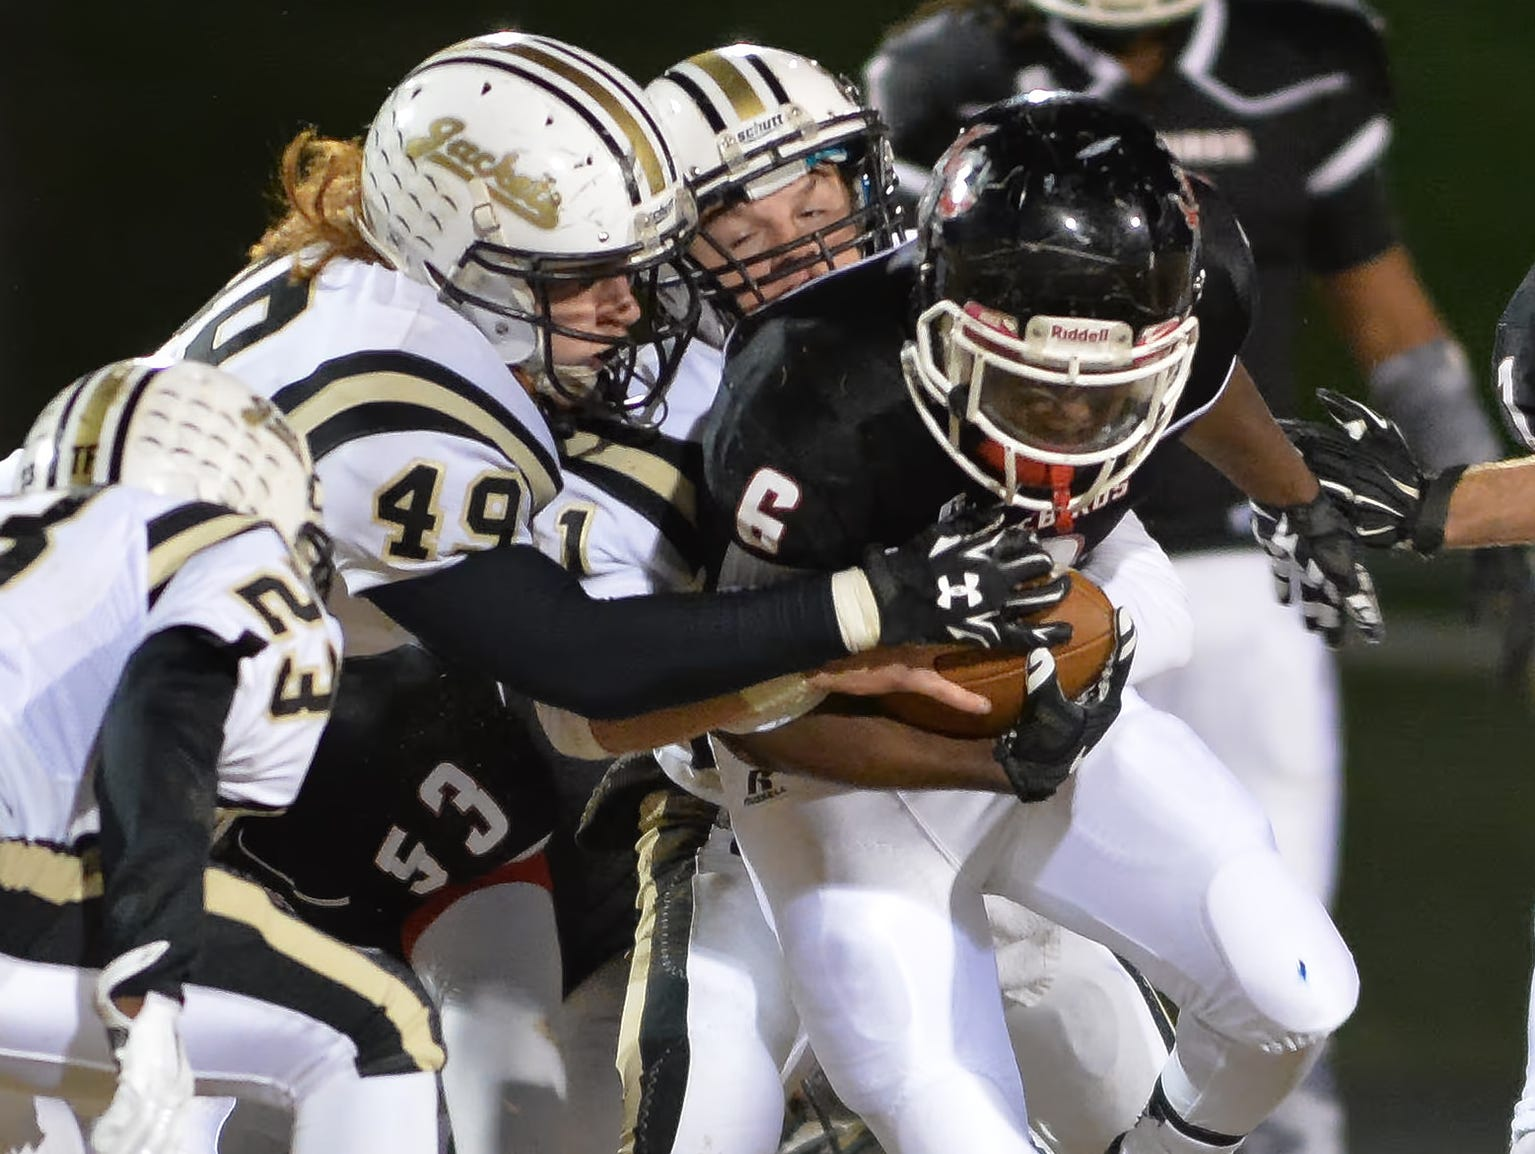 Pear-Cohn's Ke\juan Vaughn battles for yards during a recent playoff game against Springfield. The Firebirds battle Knox Catholic in the 4A state title game Saturday.